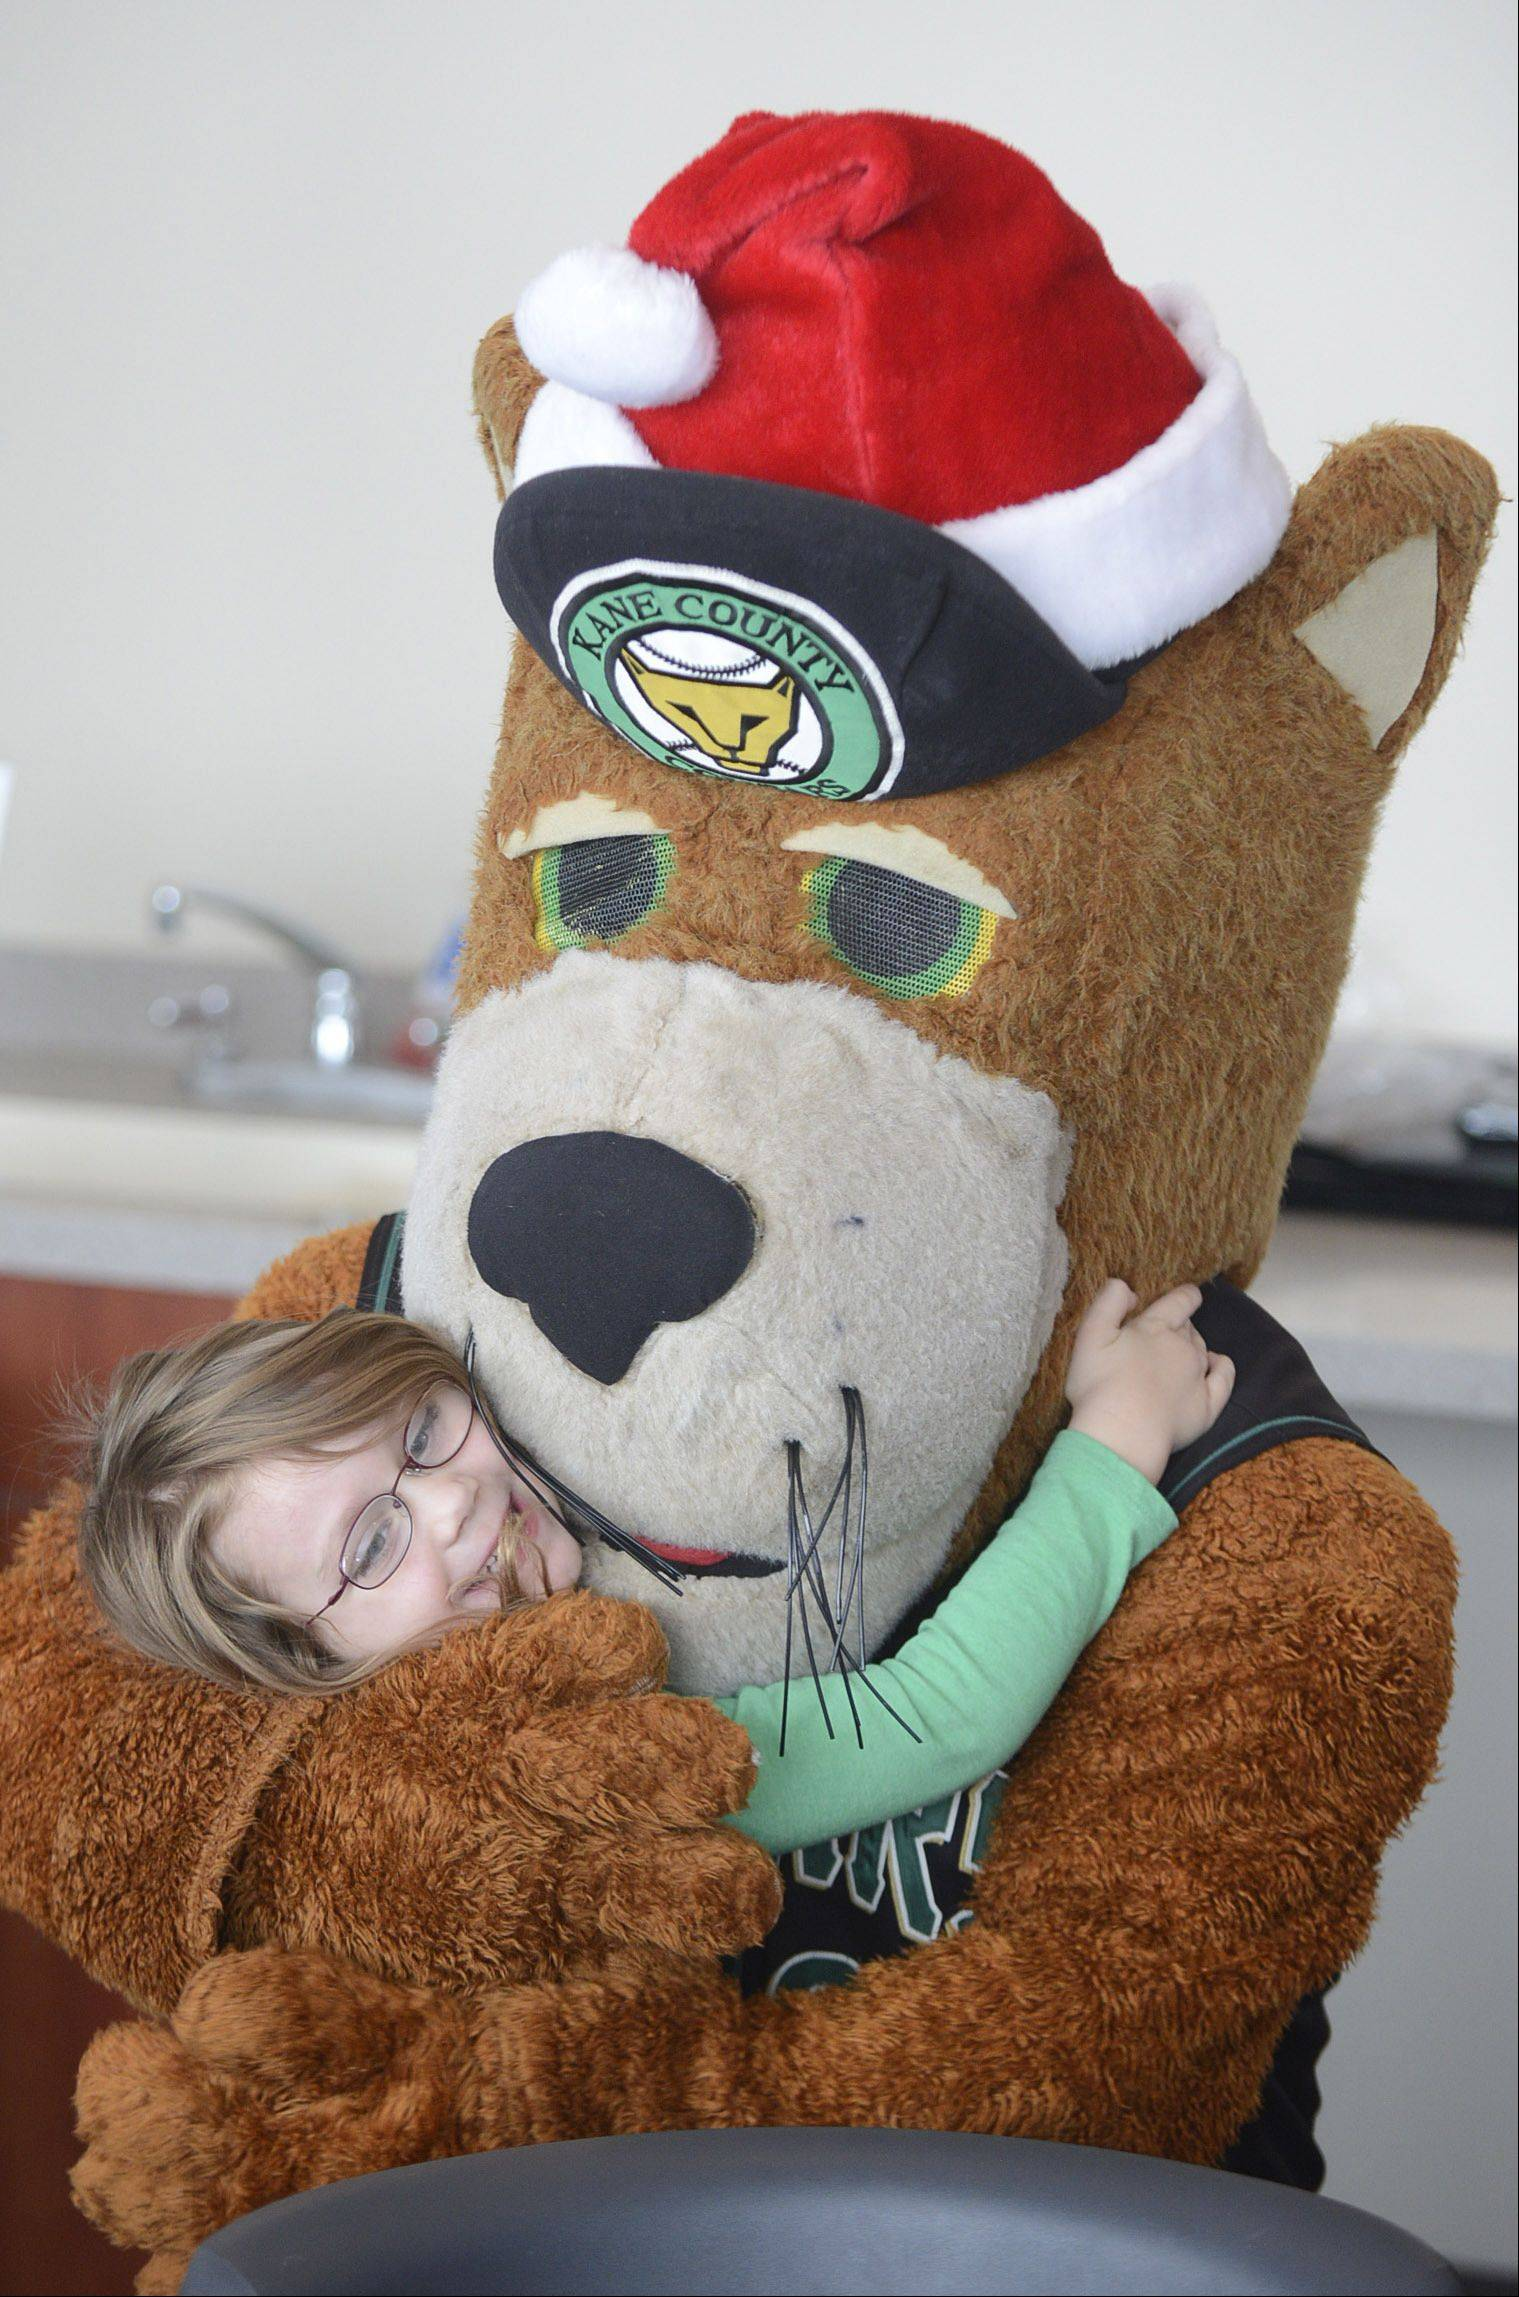 Abigail Bowgren, 5, of Geneva, throws her arms around Ozzie the Cougar after decorating holiday cookies at the Kane County Cougars' second annual holiday event at Fifth Third Ballpark in Geneva Saturday. She came to the event last year, too.